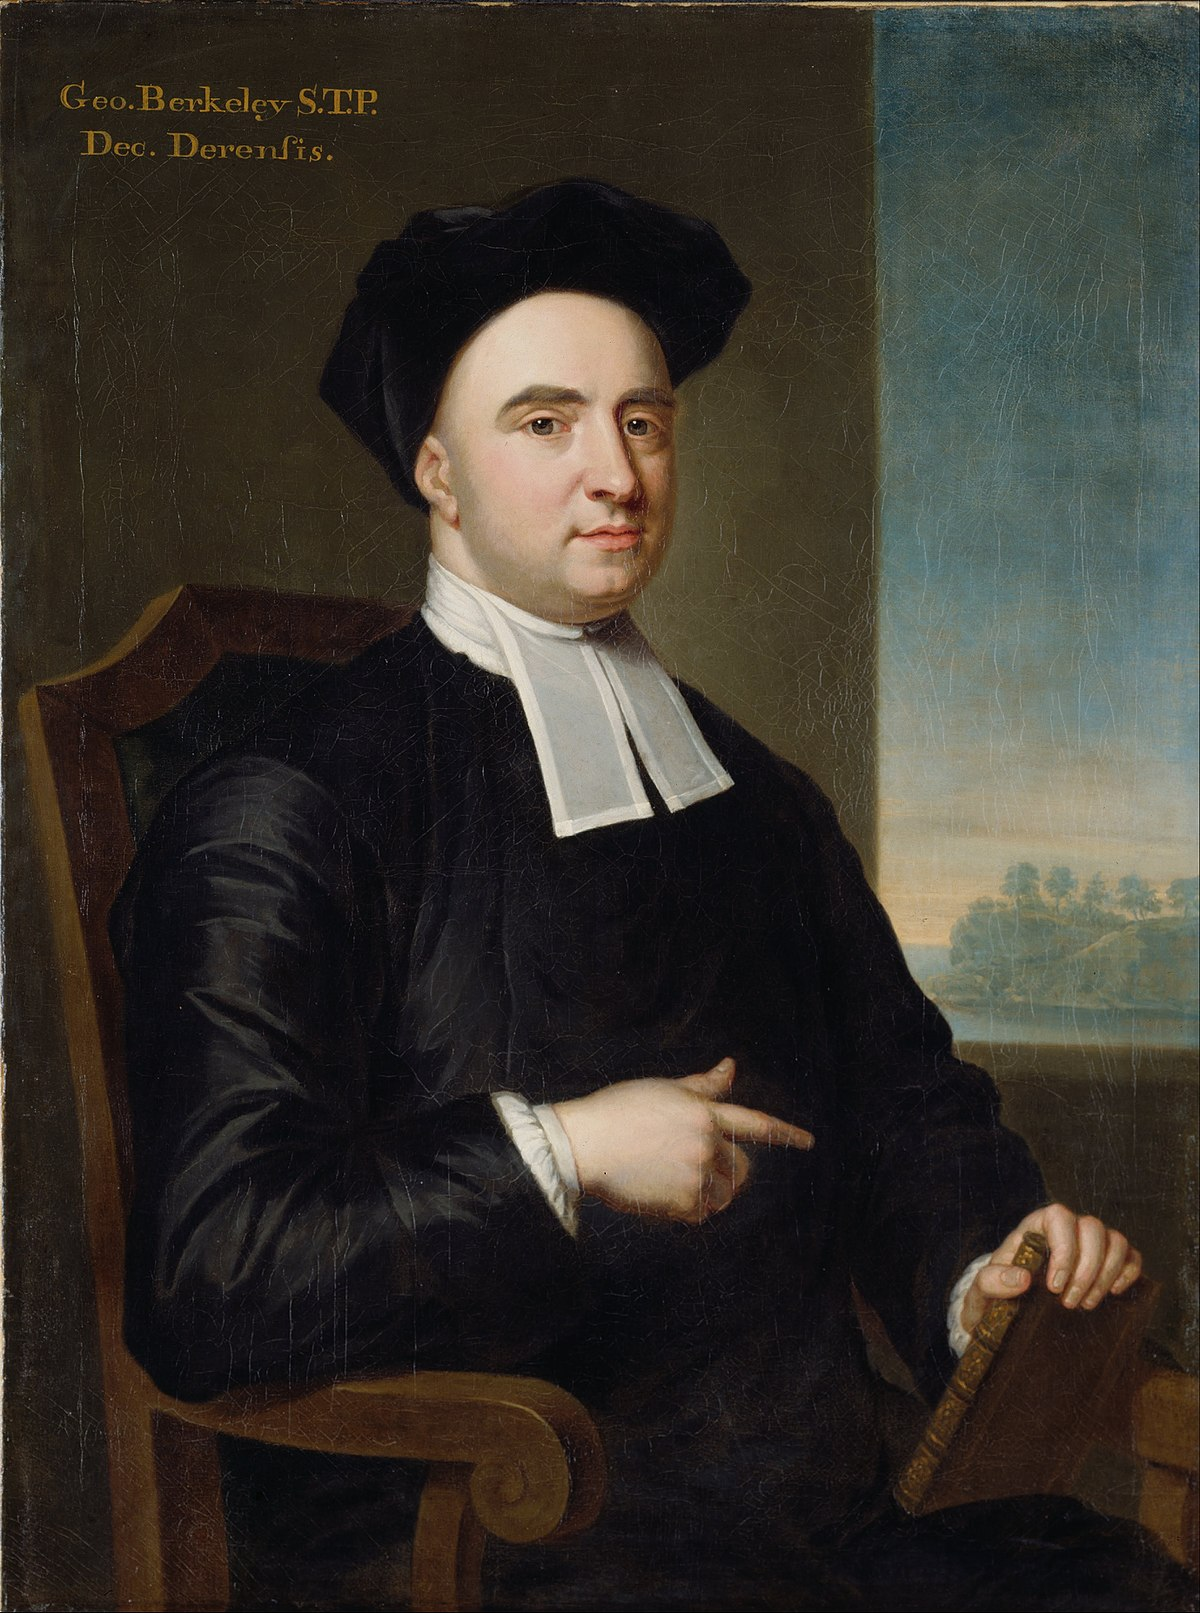 Writing a philosopher's life: The case of George Berkeley ...